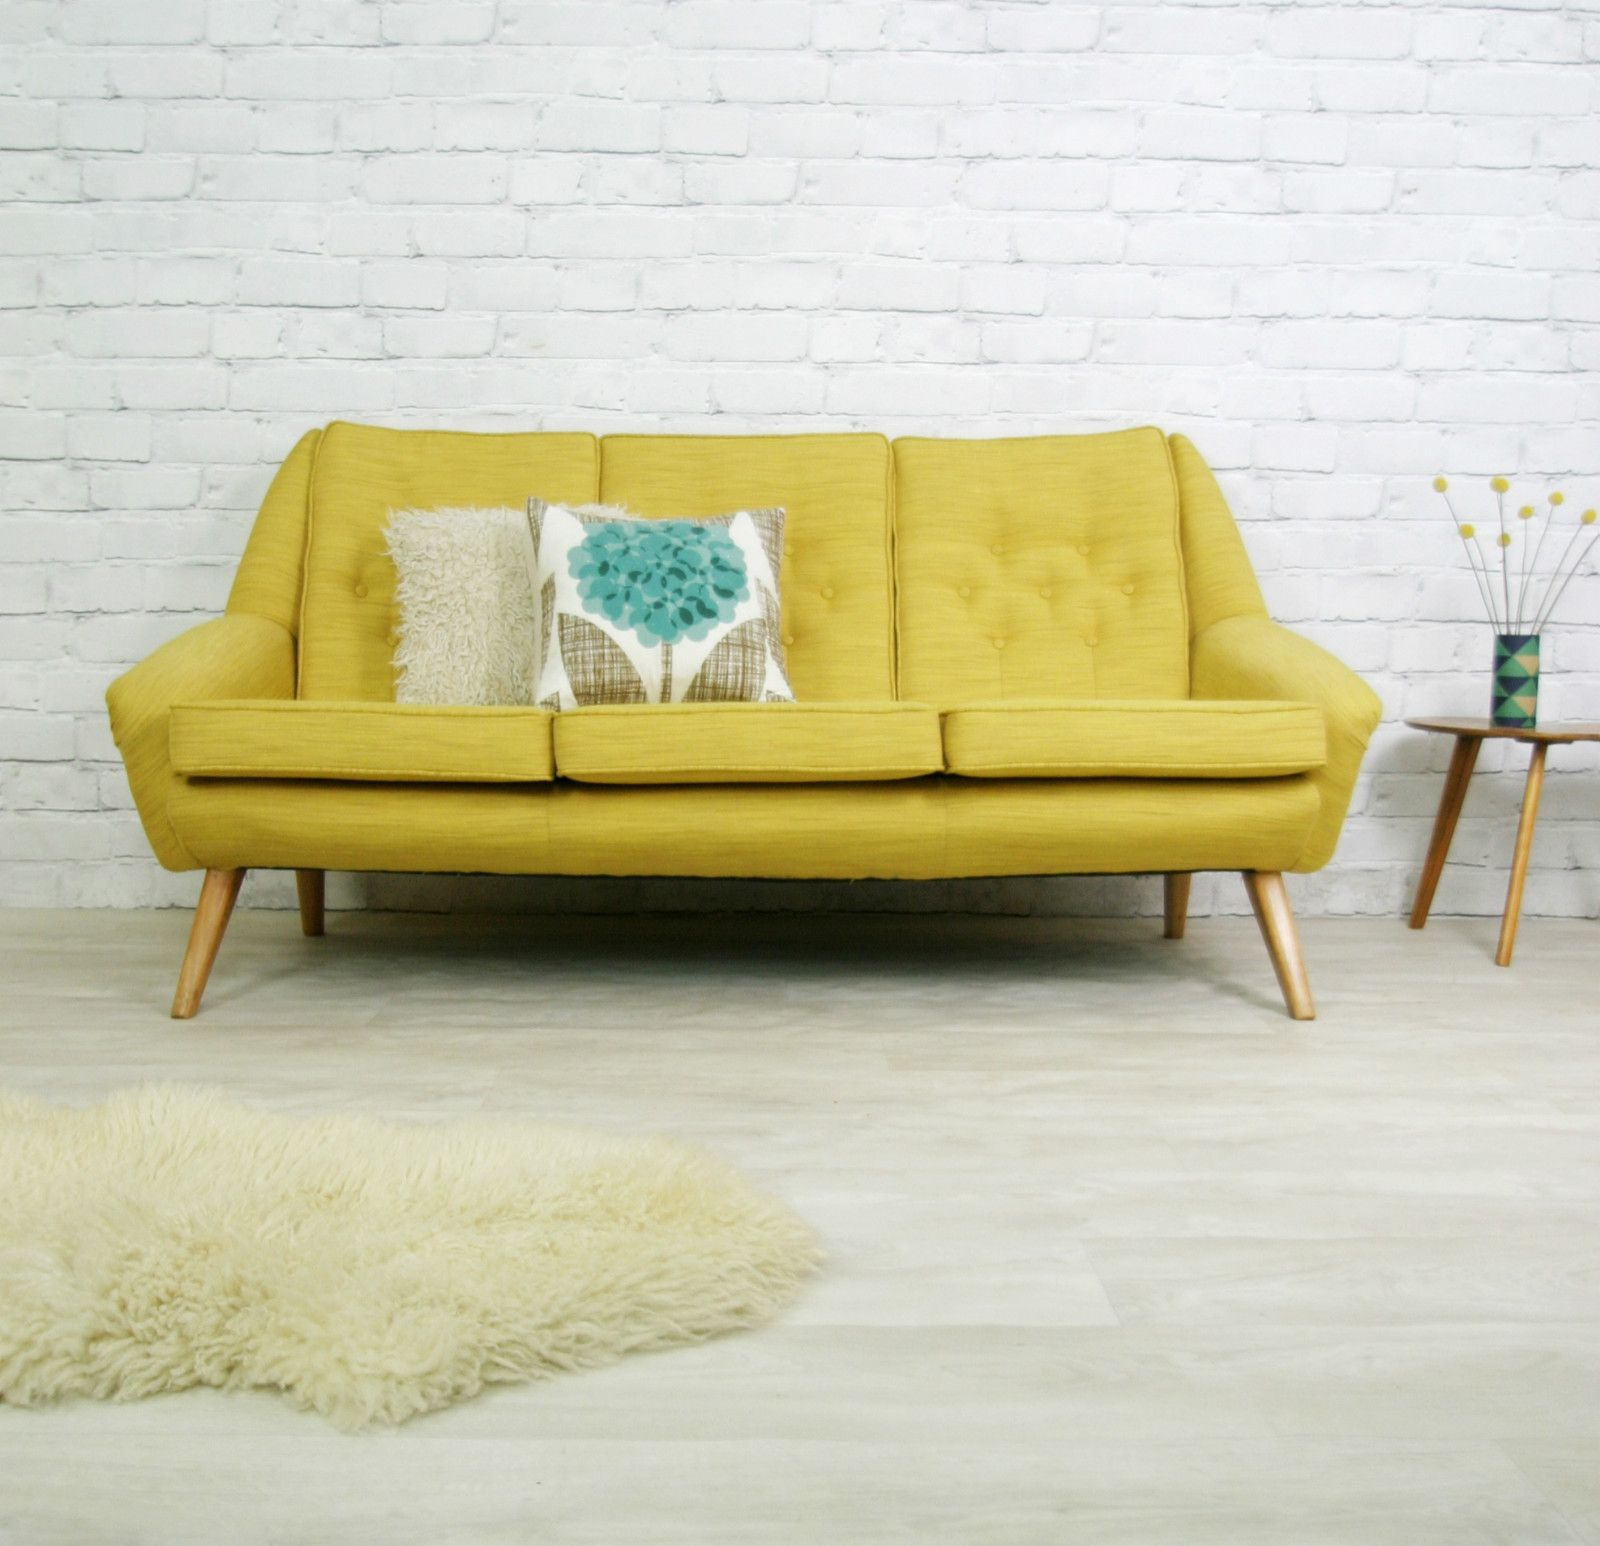 Vintage retro mid century mustard danish style sofa settee for Furniture 60s style